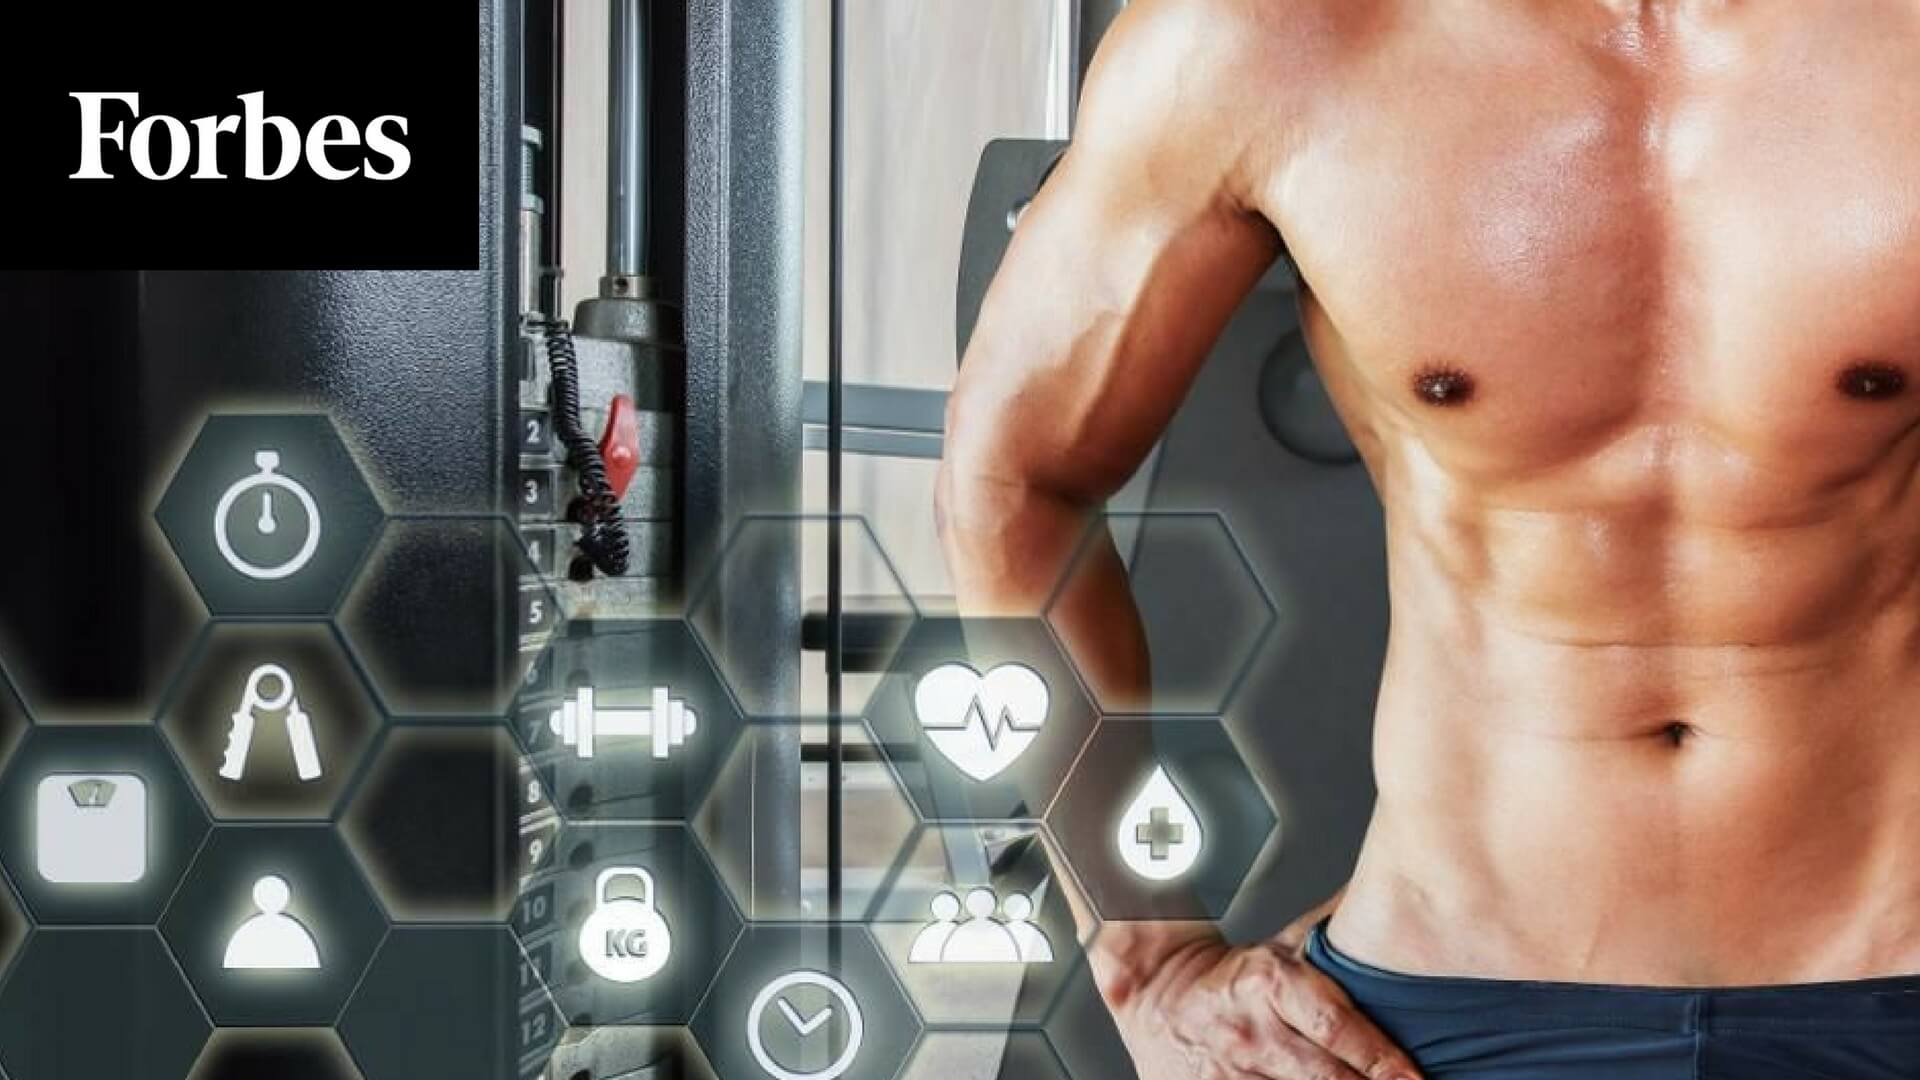 Forbes: Genetic Insight Is The Future Of Health And Fitness, And Here's Why